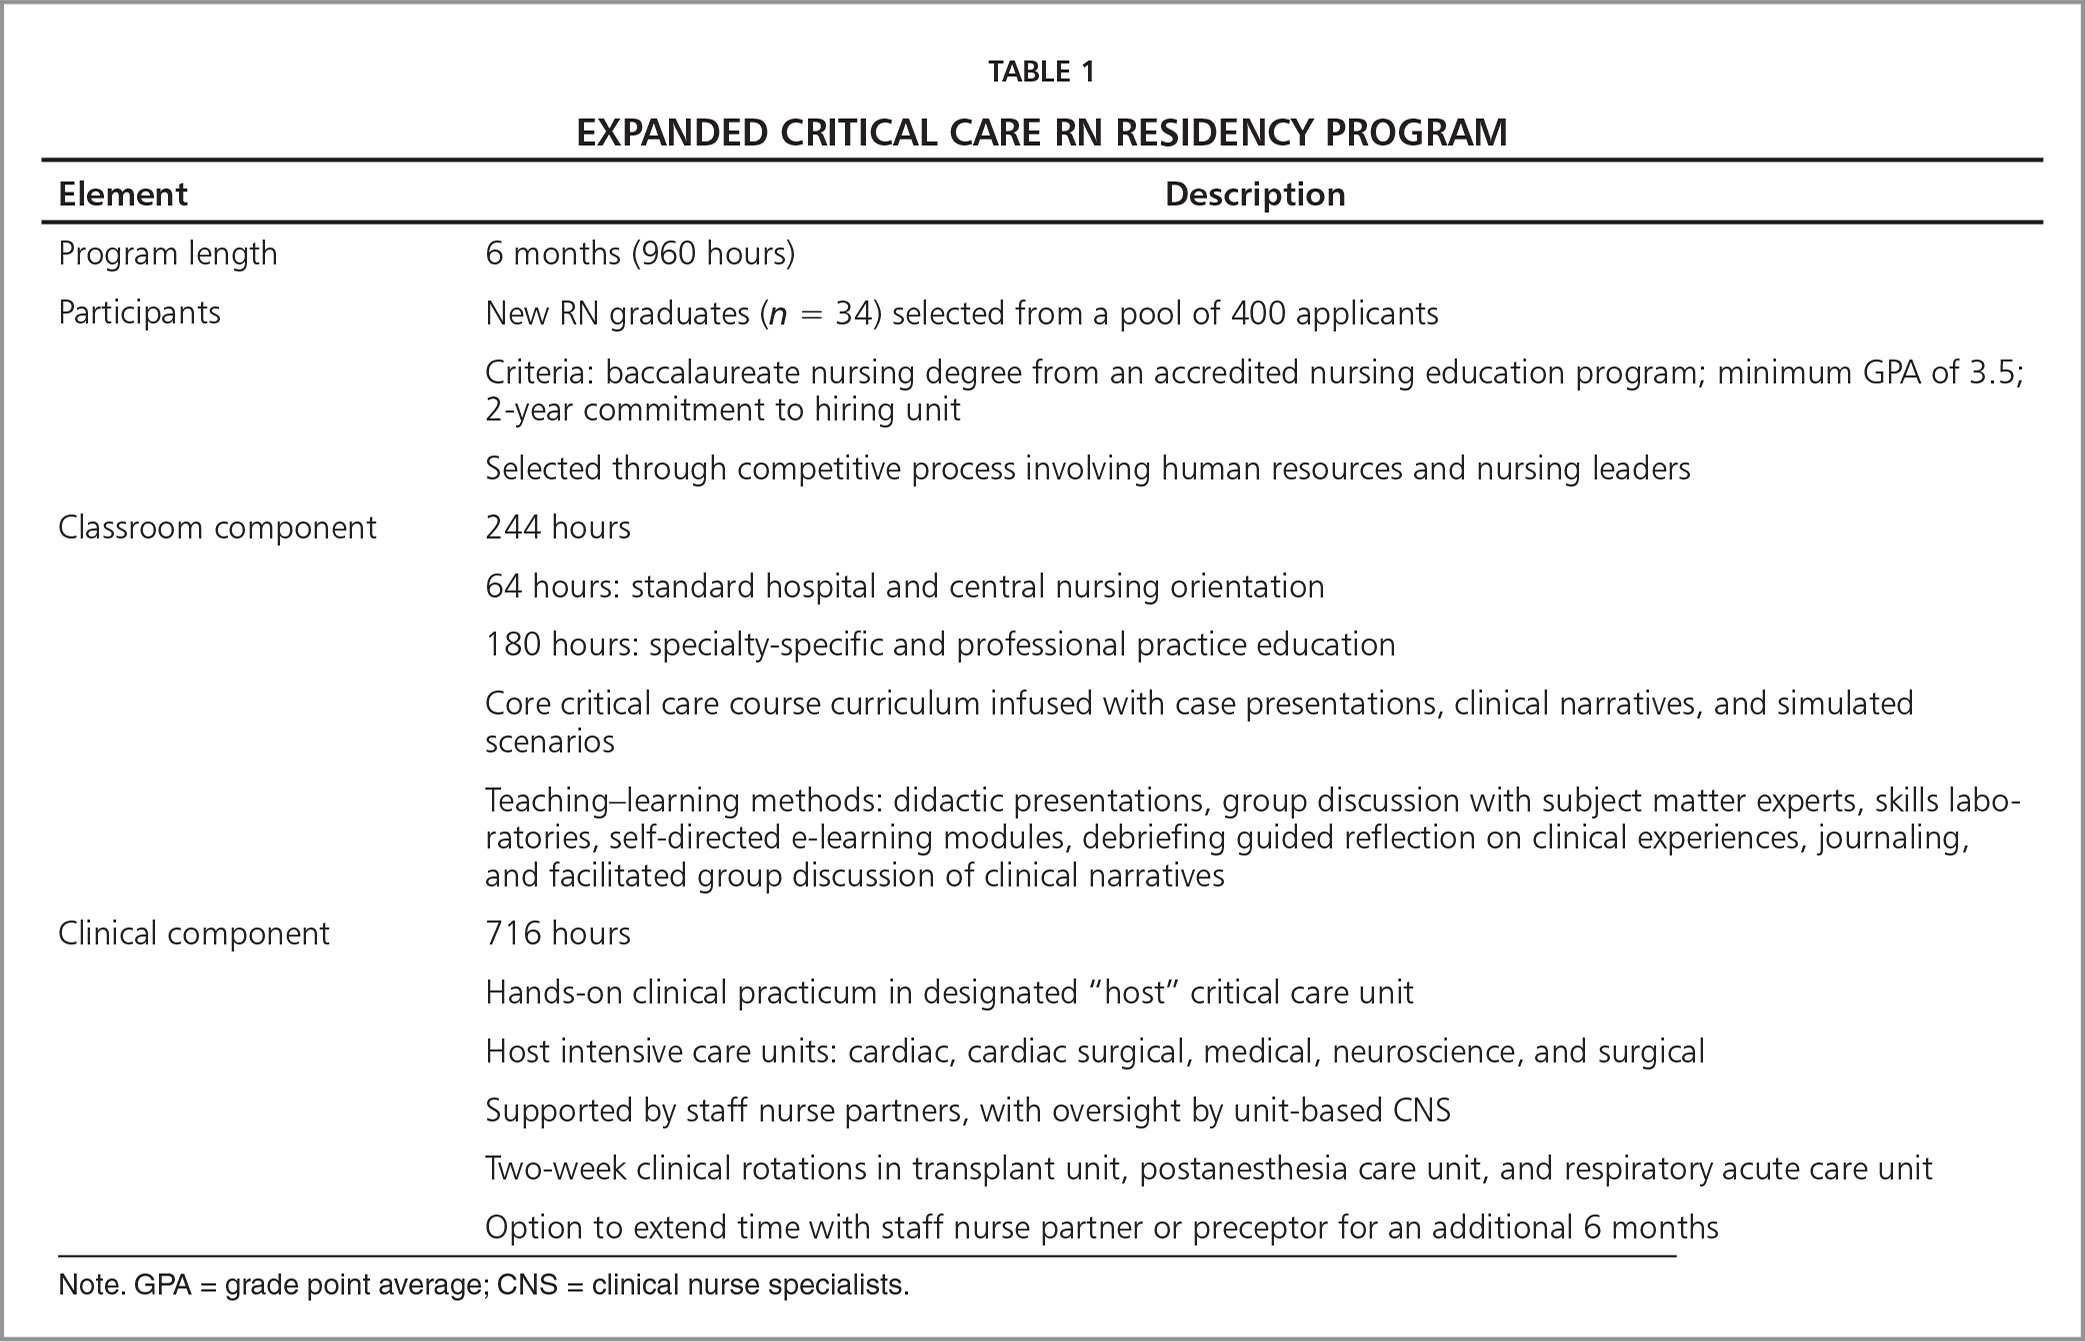 reflection on practice graduate nurse The use of reflective practice in new graduate registered nurses residency program show more authors abstract new graduate nurses encounter emotional distress related to this article describes the use of a reflective practice exercise in a new registered nurse residency program in a.